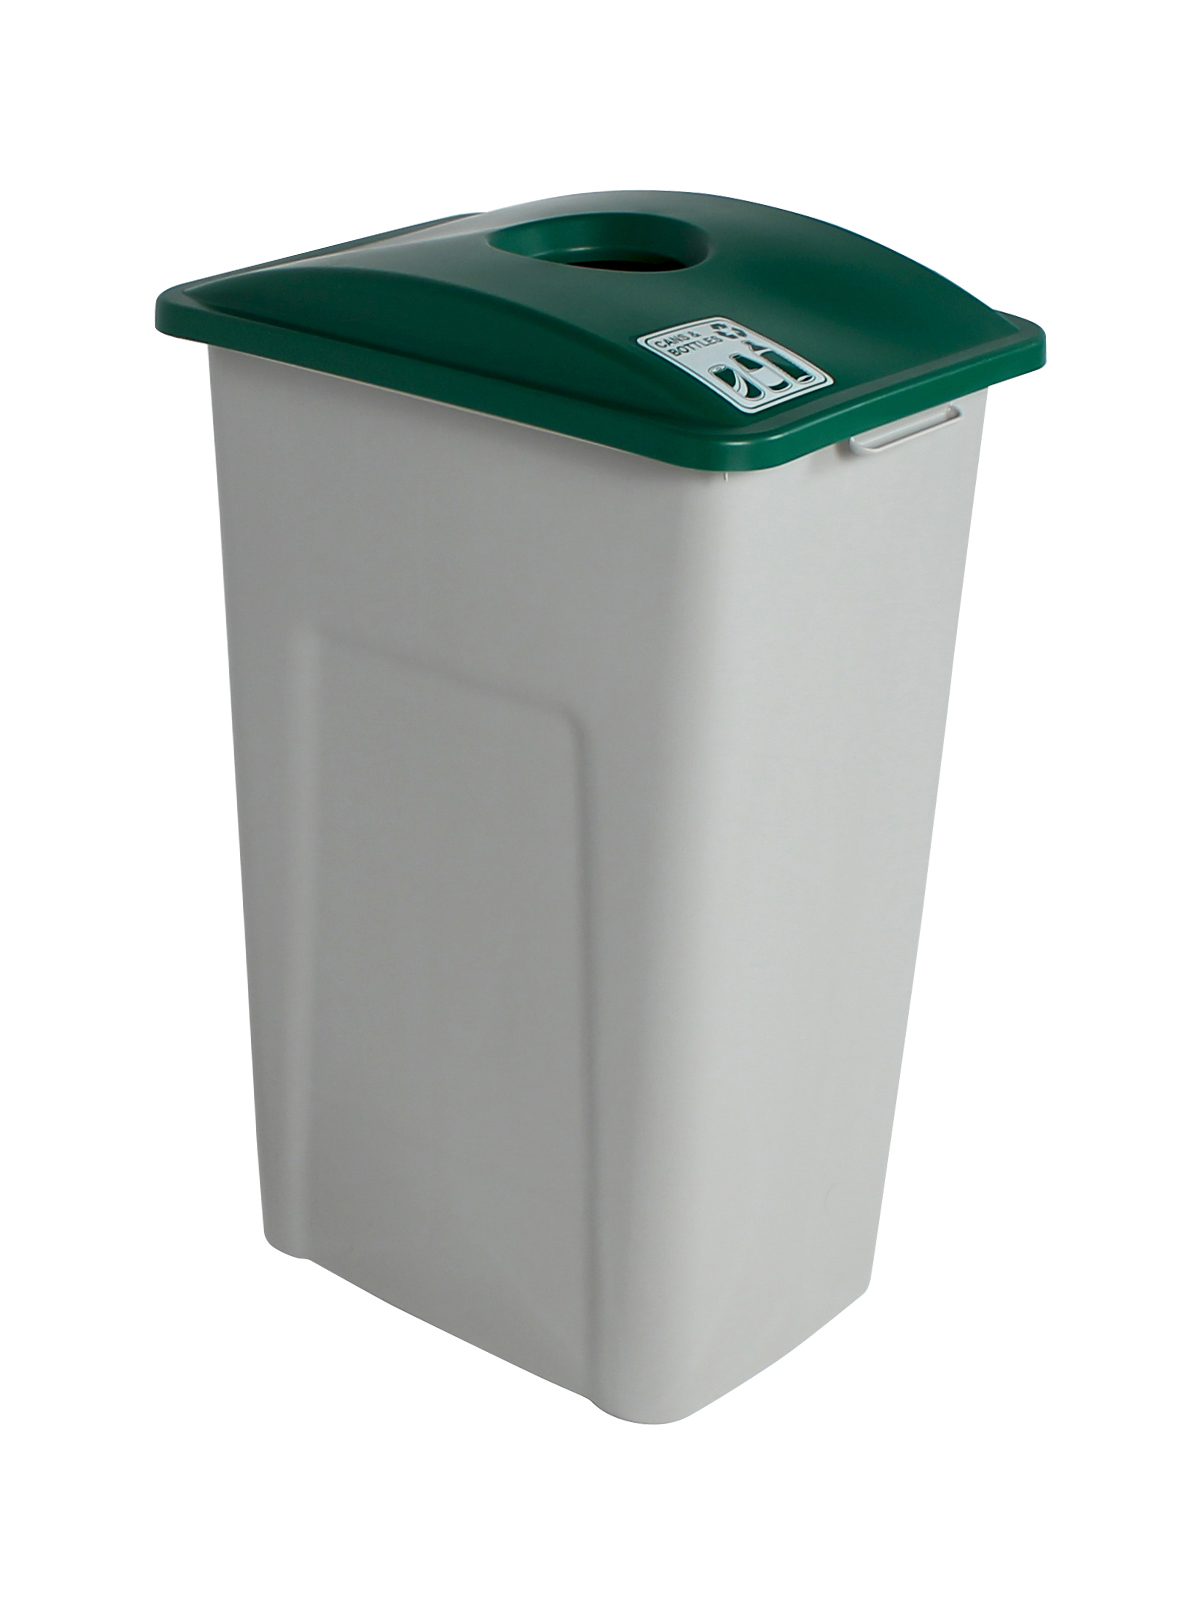 WASTE WATCHER XL - Single - Cans & Bottles - Circle - Grey-Green